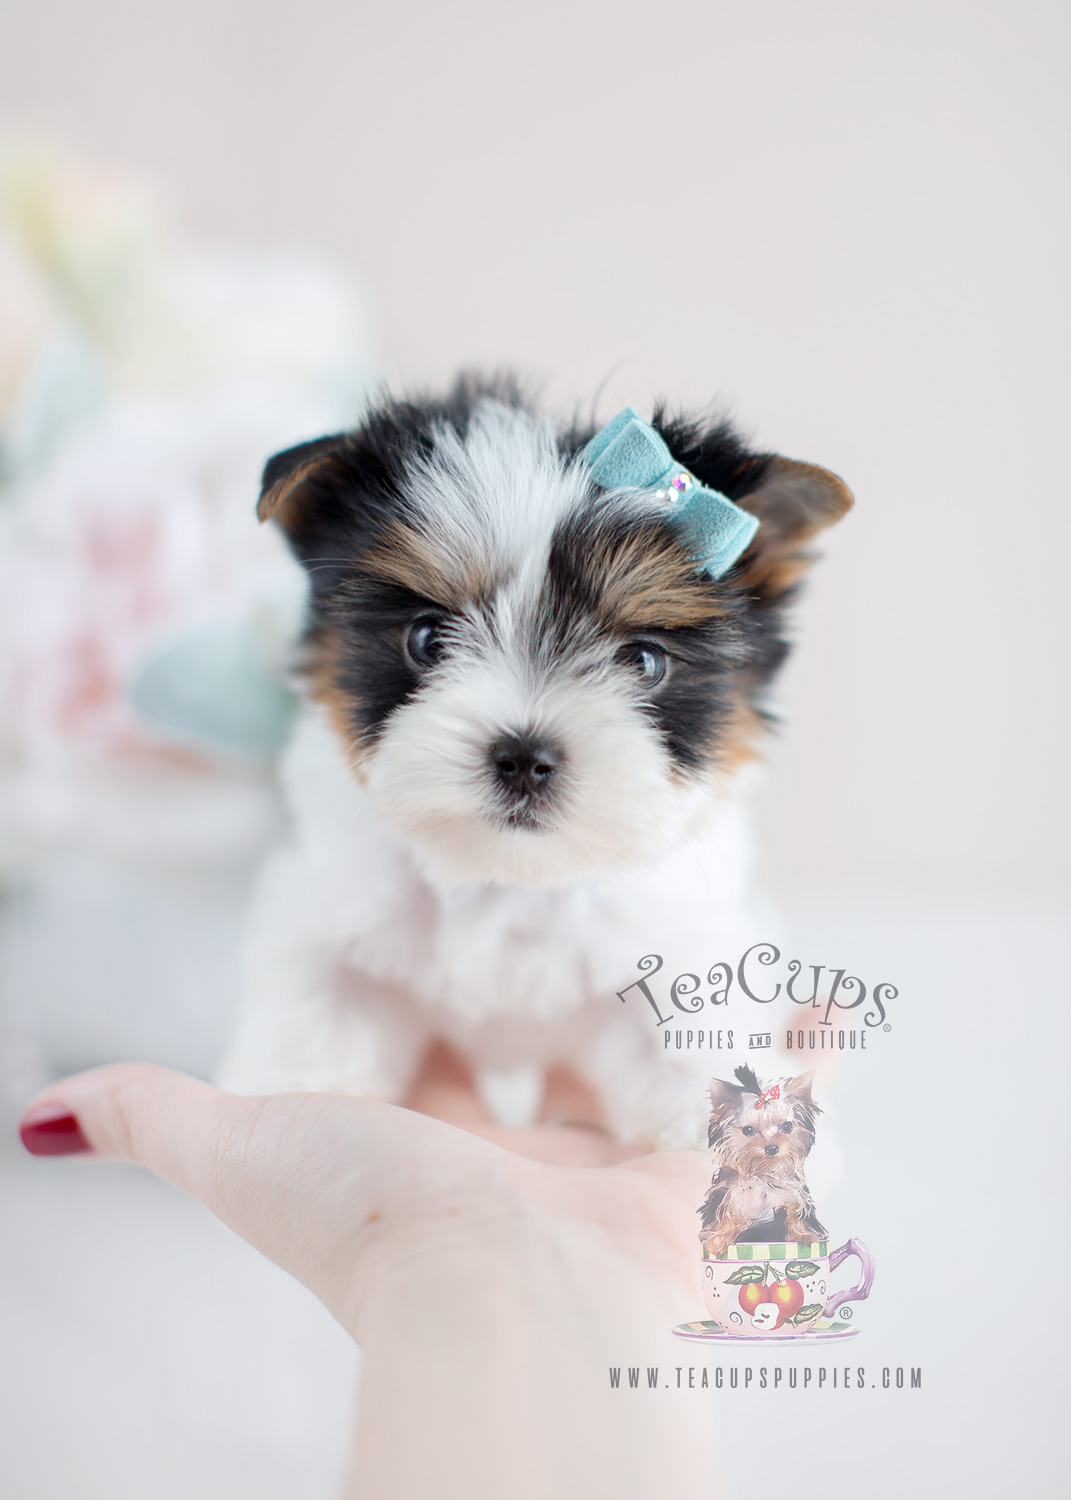 Biewer Yorkie Terrier Puppies For Sale Teacups Puppies Boutique